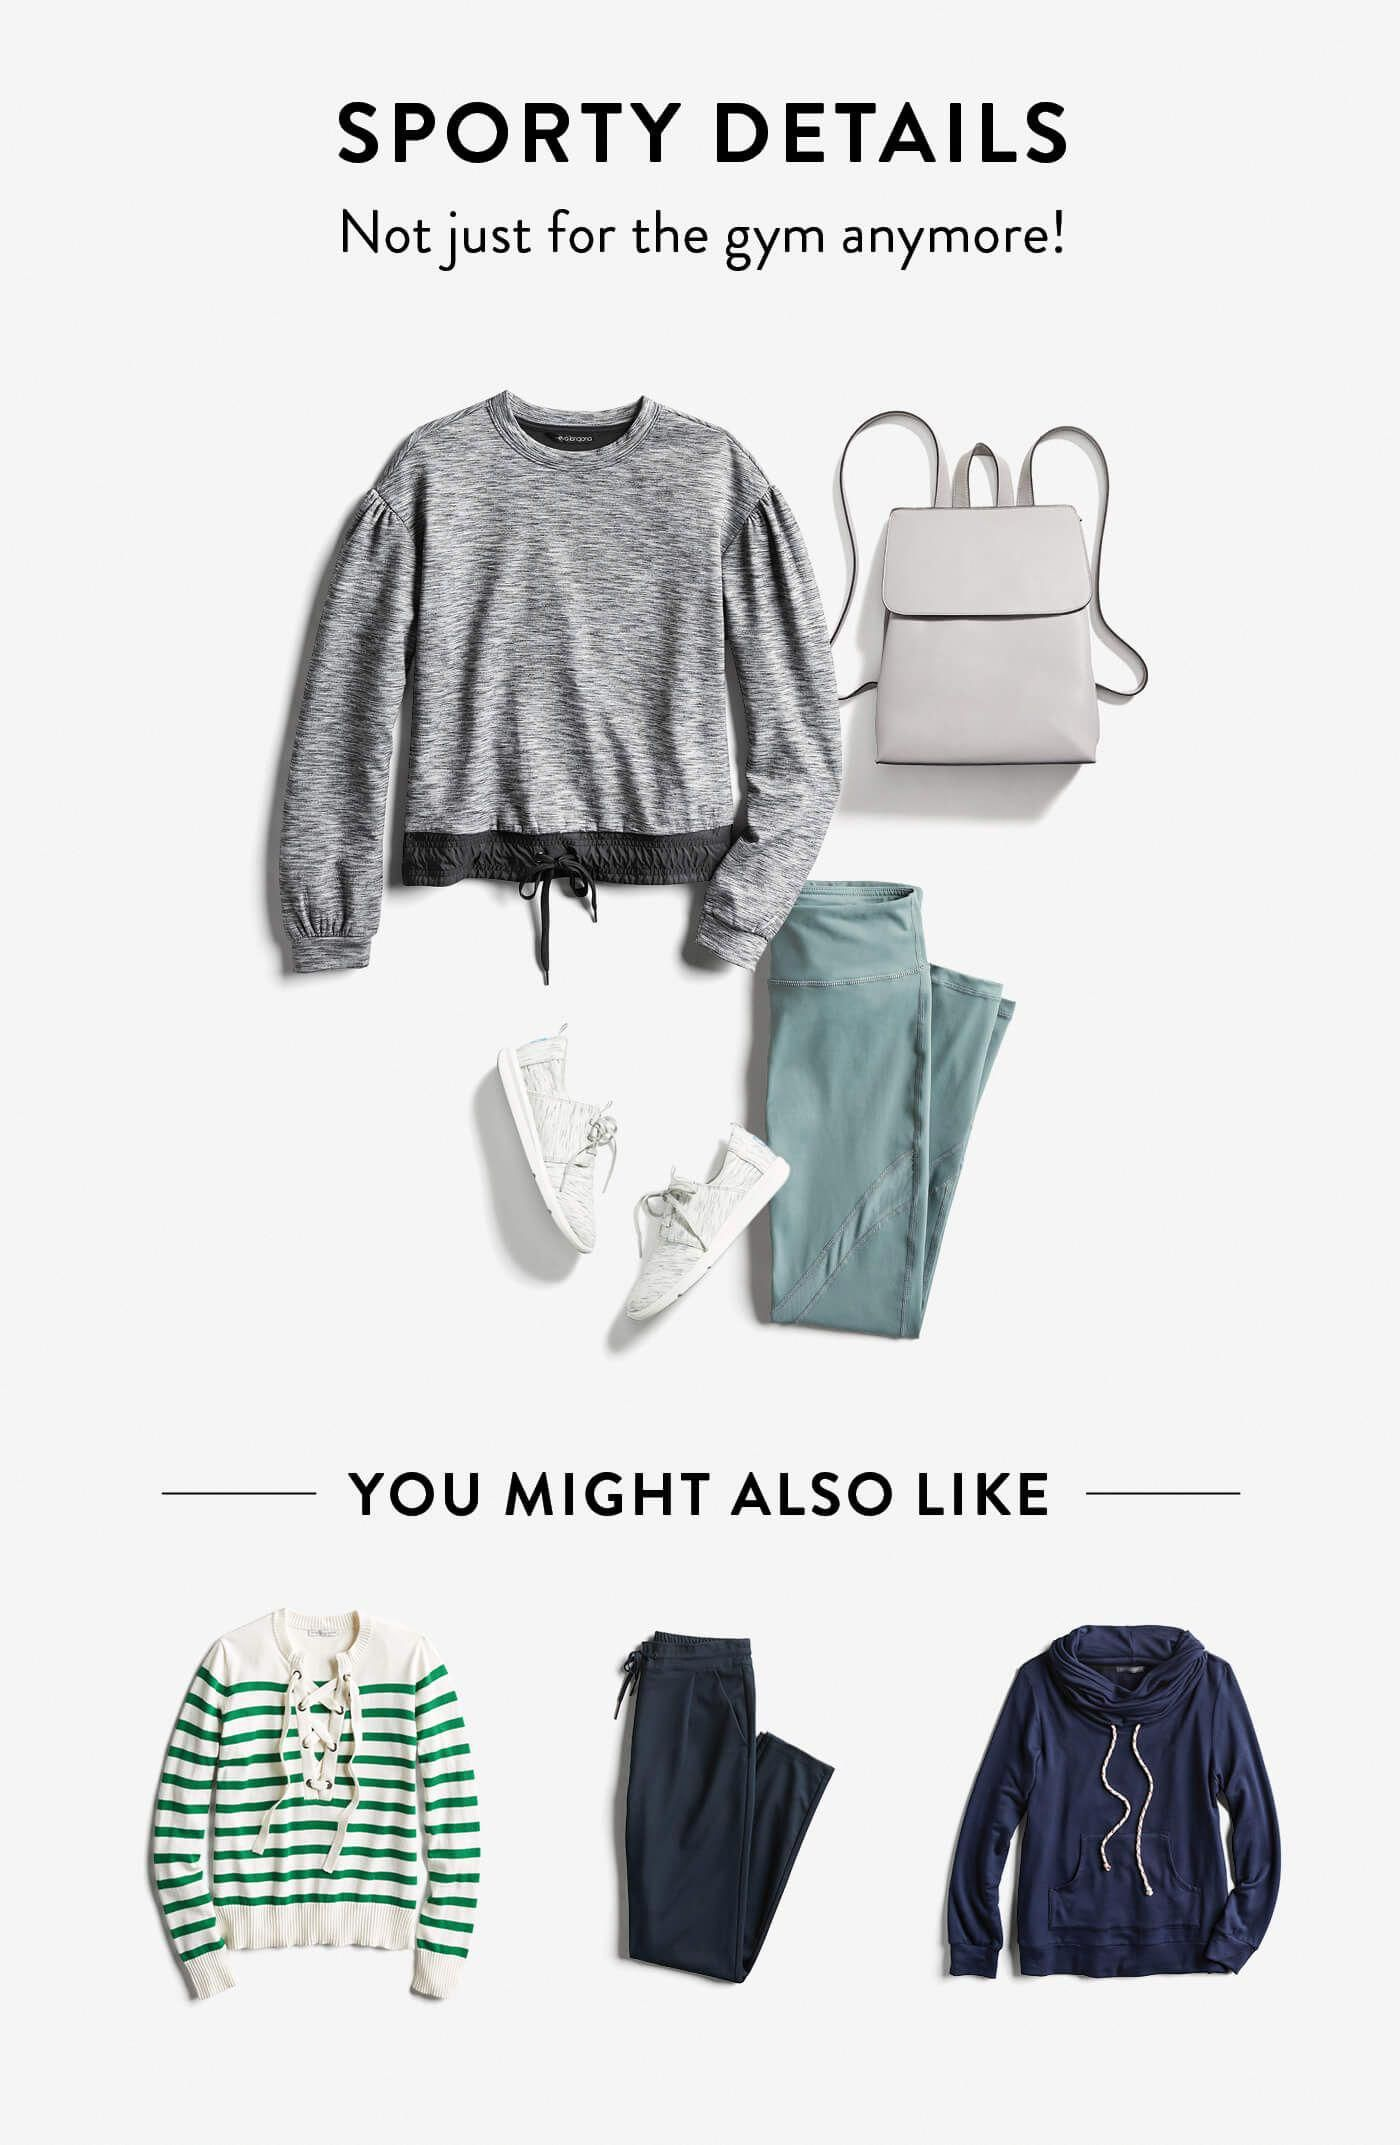 Green dress on pale skin   Fashion Trends I love everything but the striped green top and